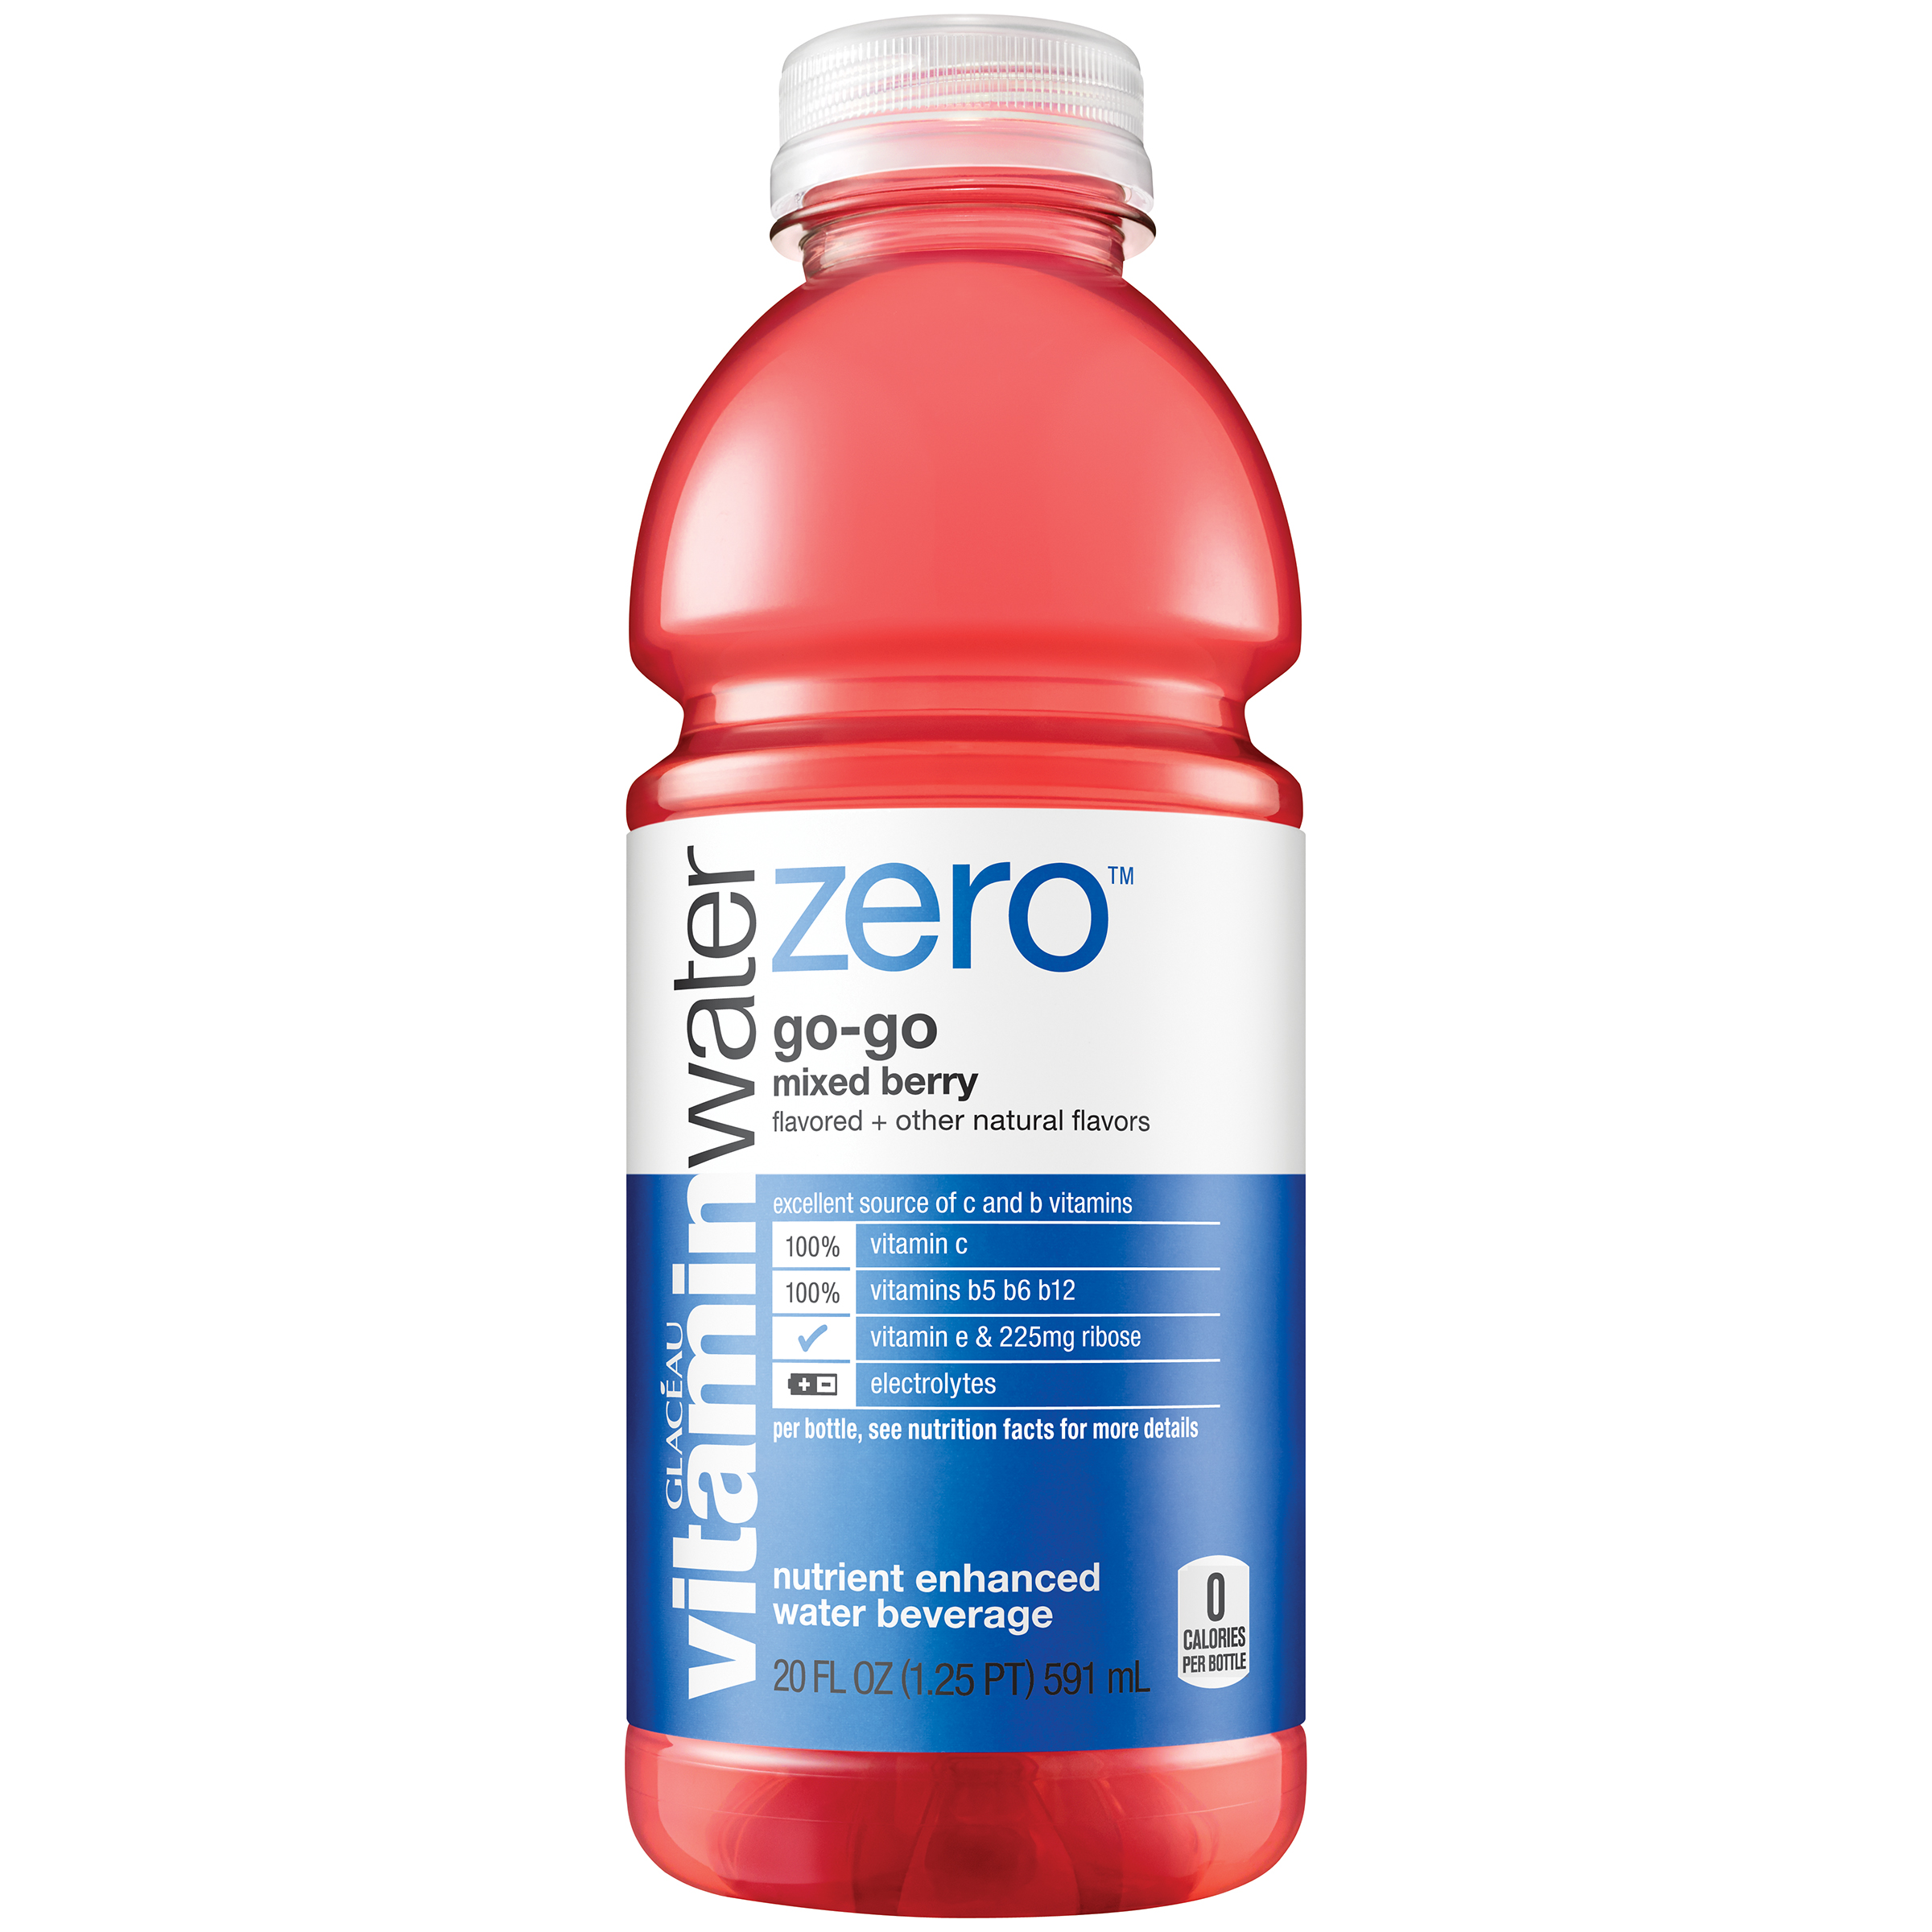 vitaminwater zero go-go, Mixed Berry vitaminwater zero, 20 fl oz